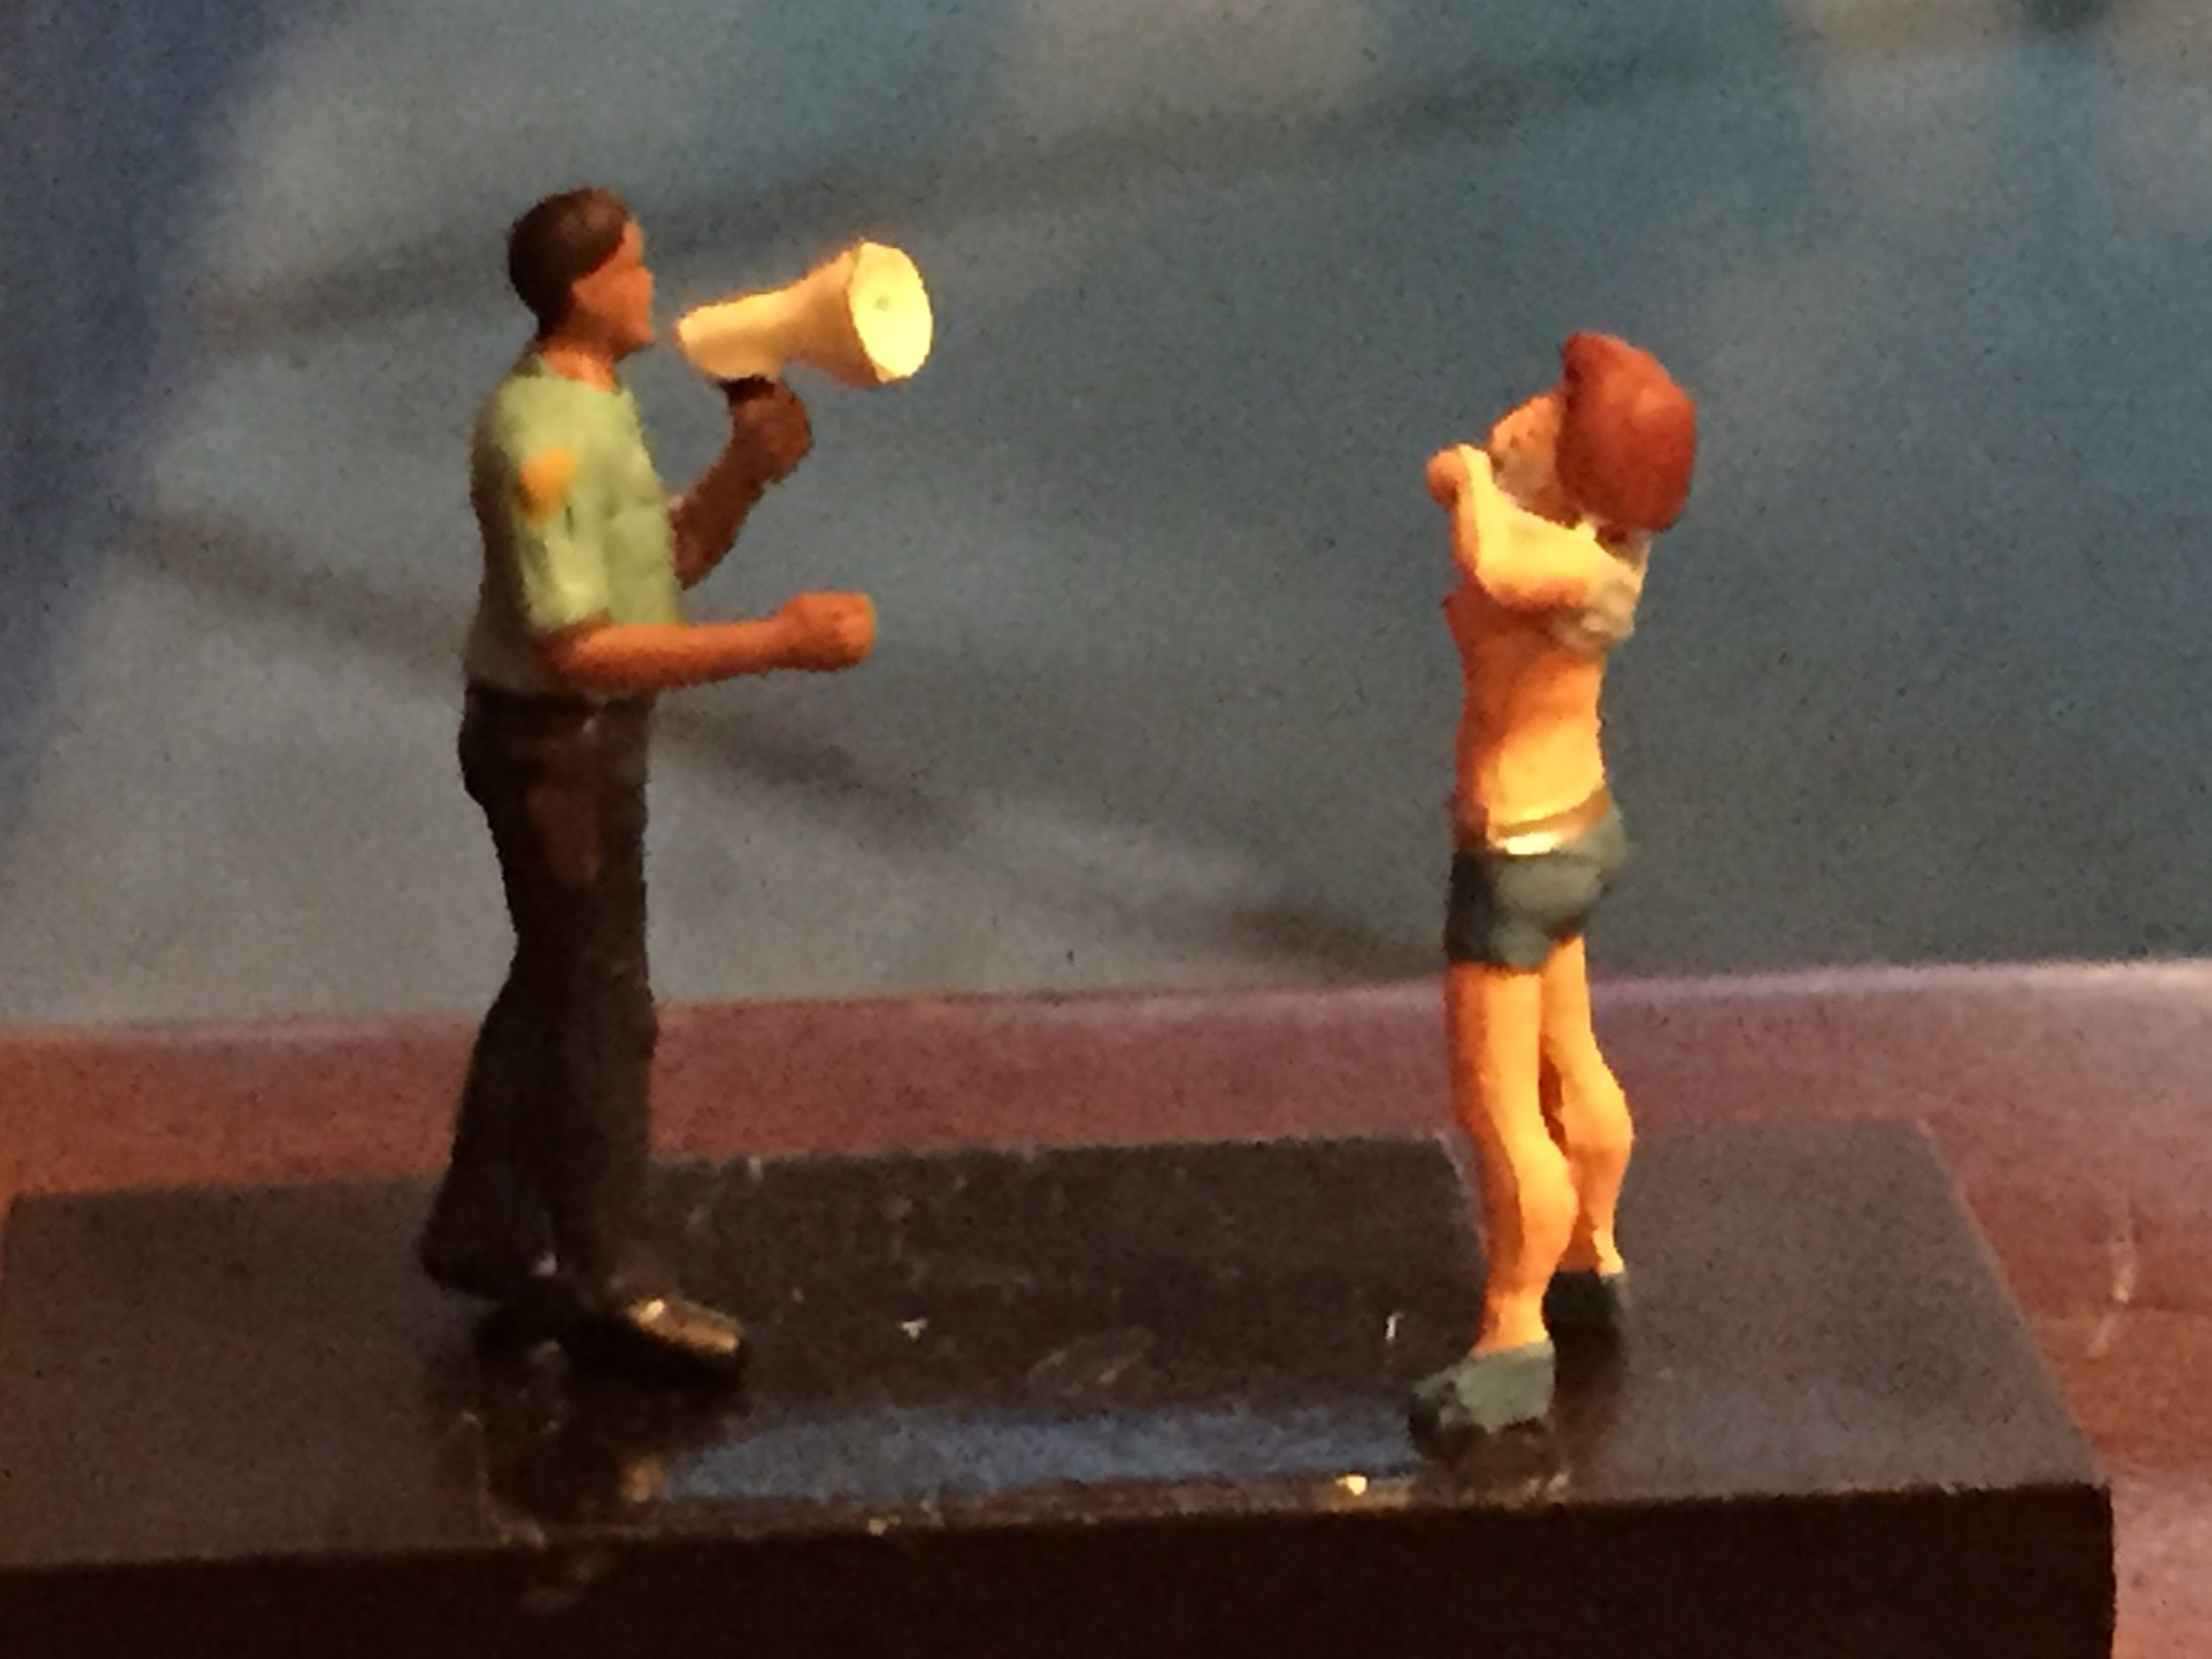 Miniature figures of a police with a horn and a woman pulling up her top